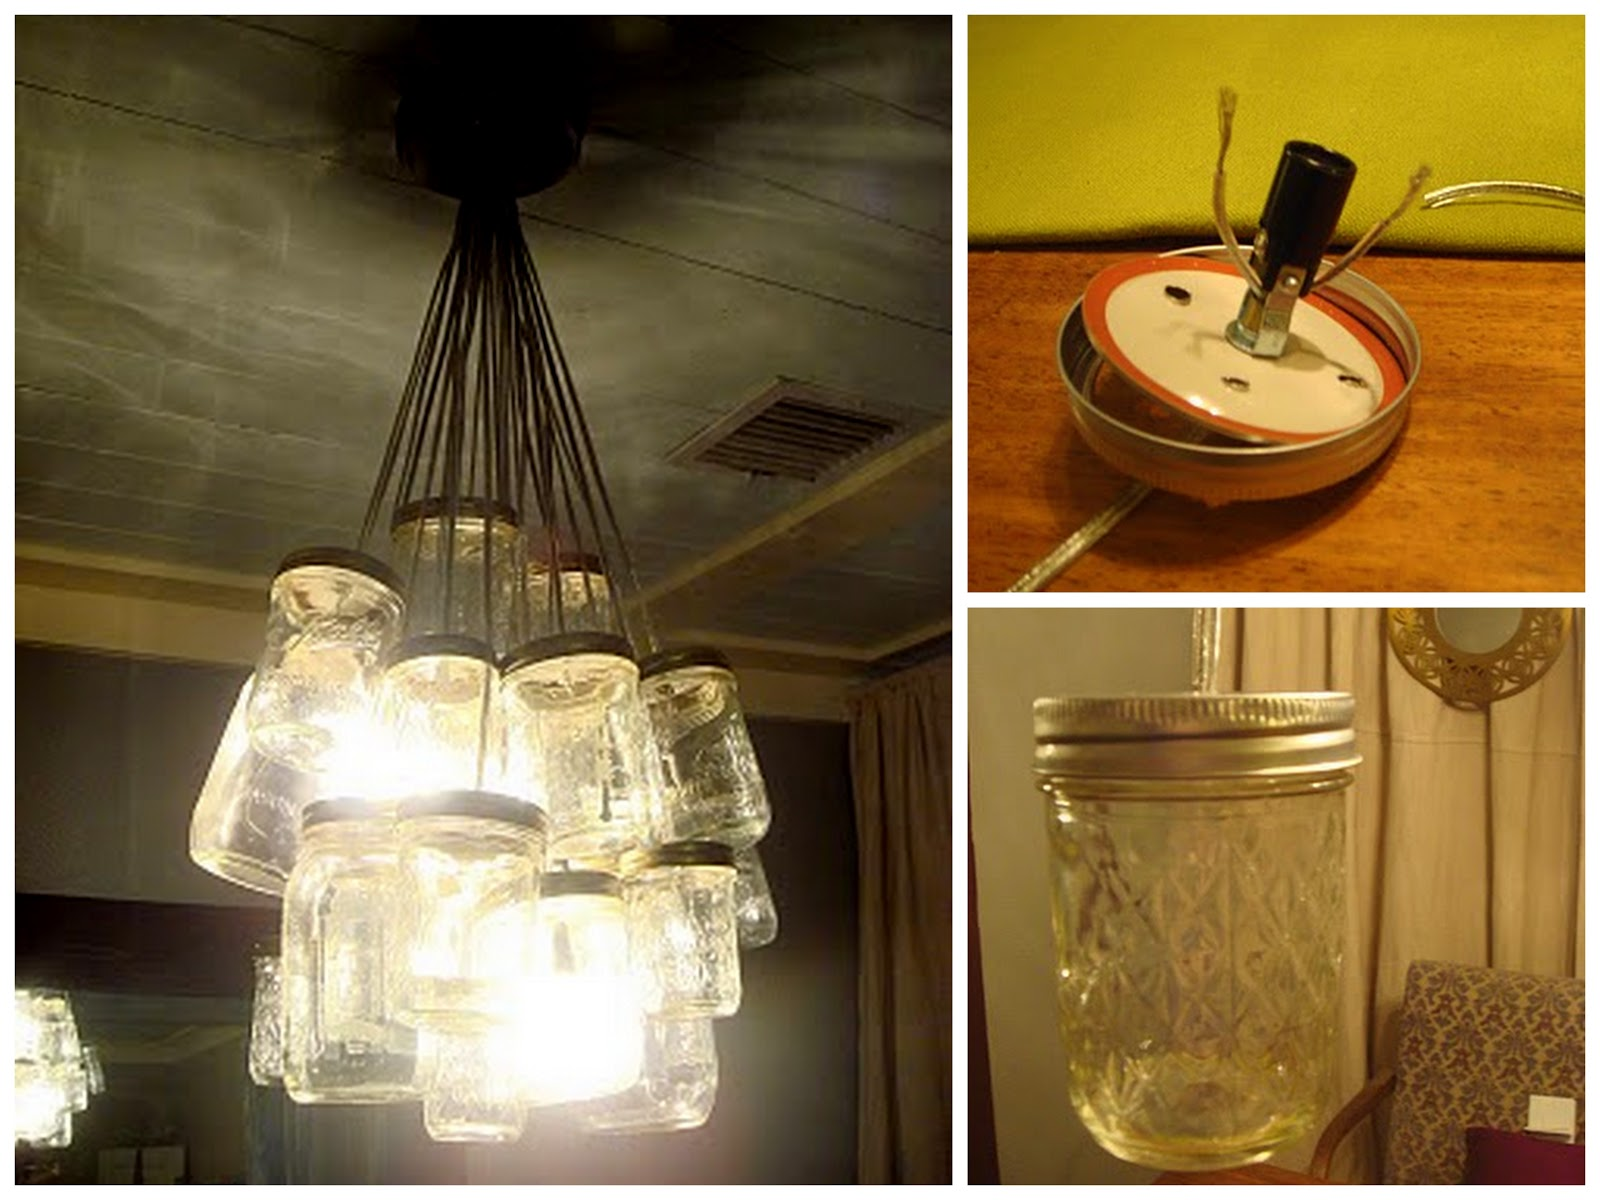 Nine red how to mason jar chandelier tutorial i love it they did such a great job on this ive seen quite a few mason jar lights but mostly singles or in groups of 3 4 this chandelier takes it to aloadofball Choice Image